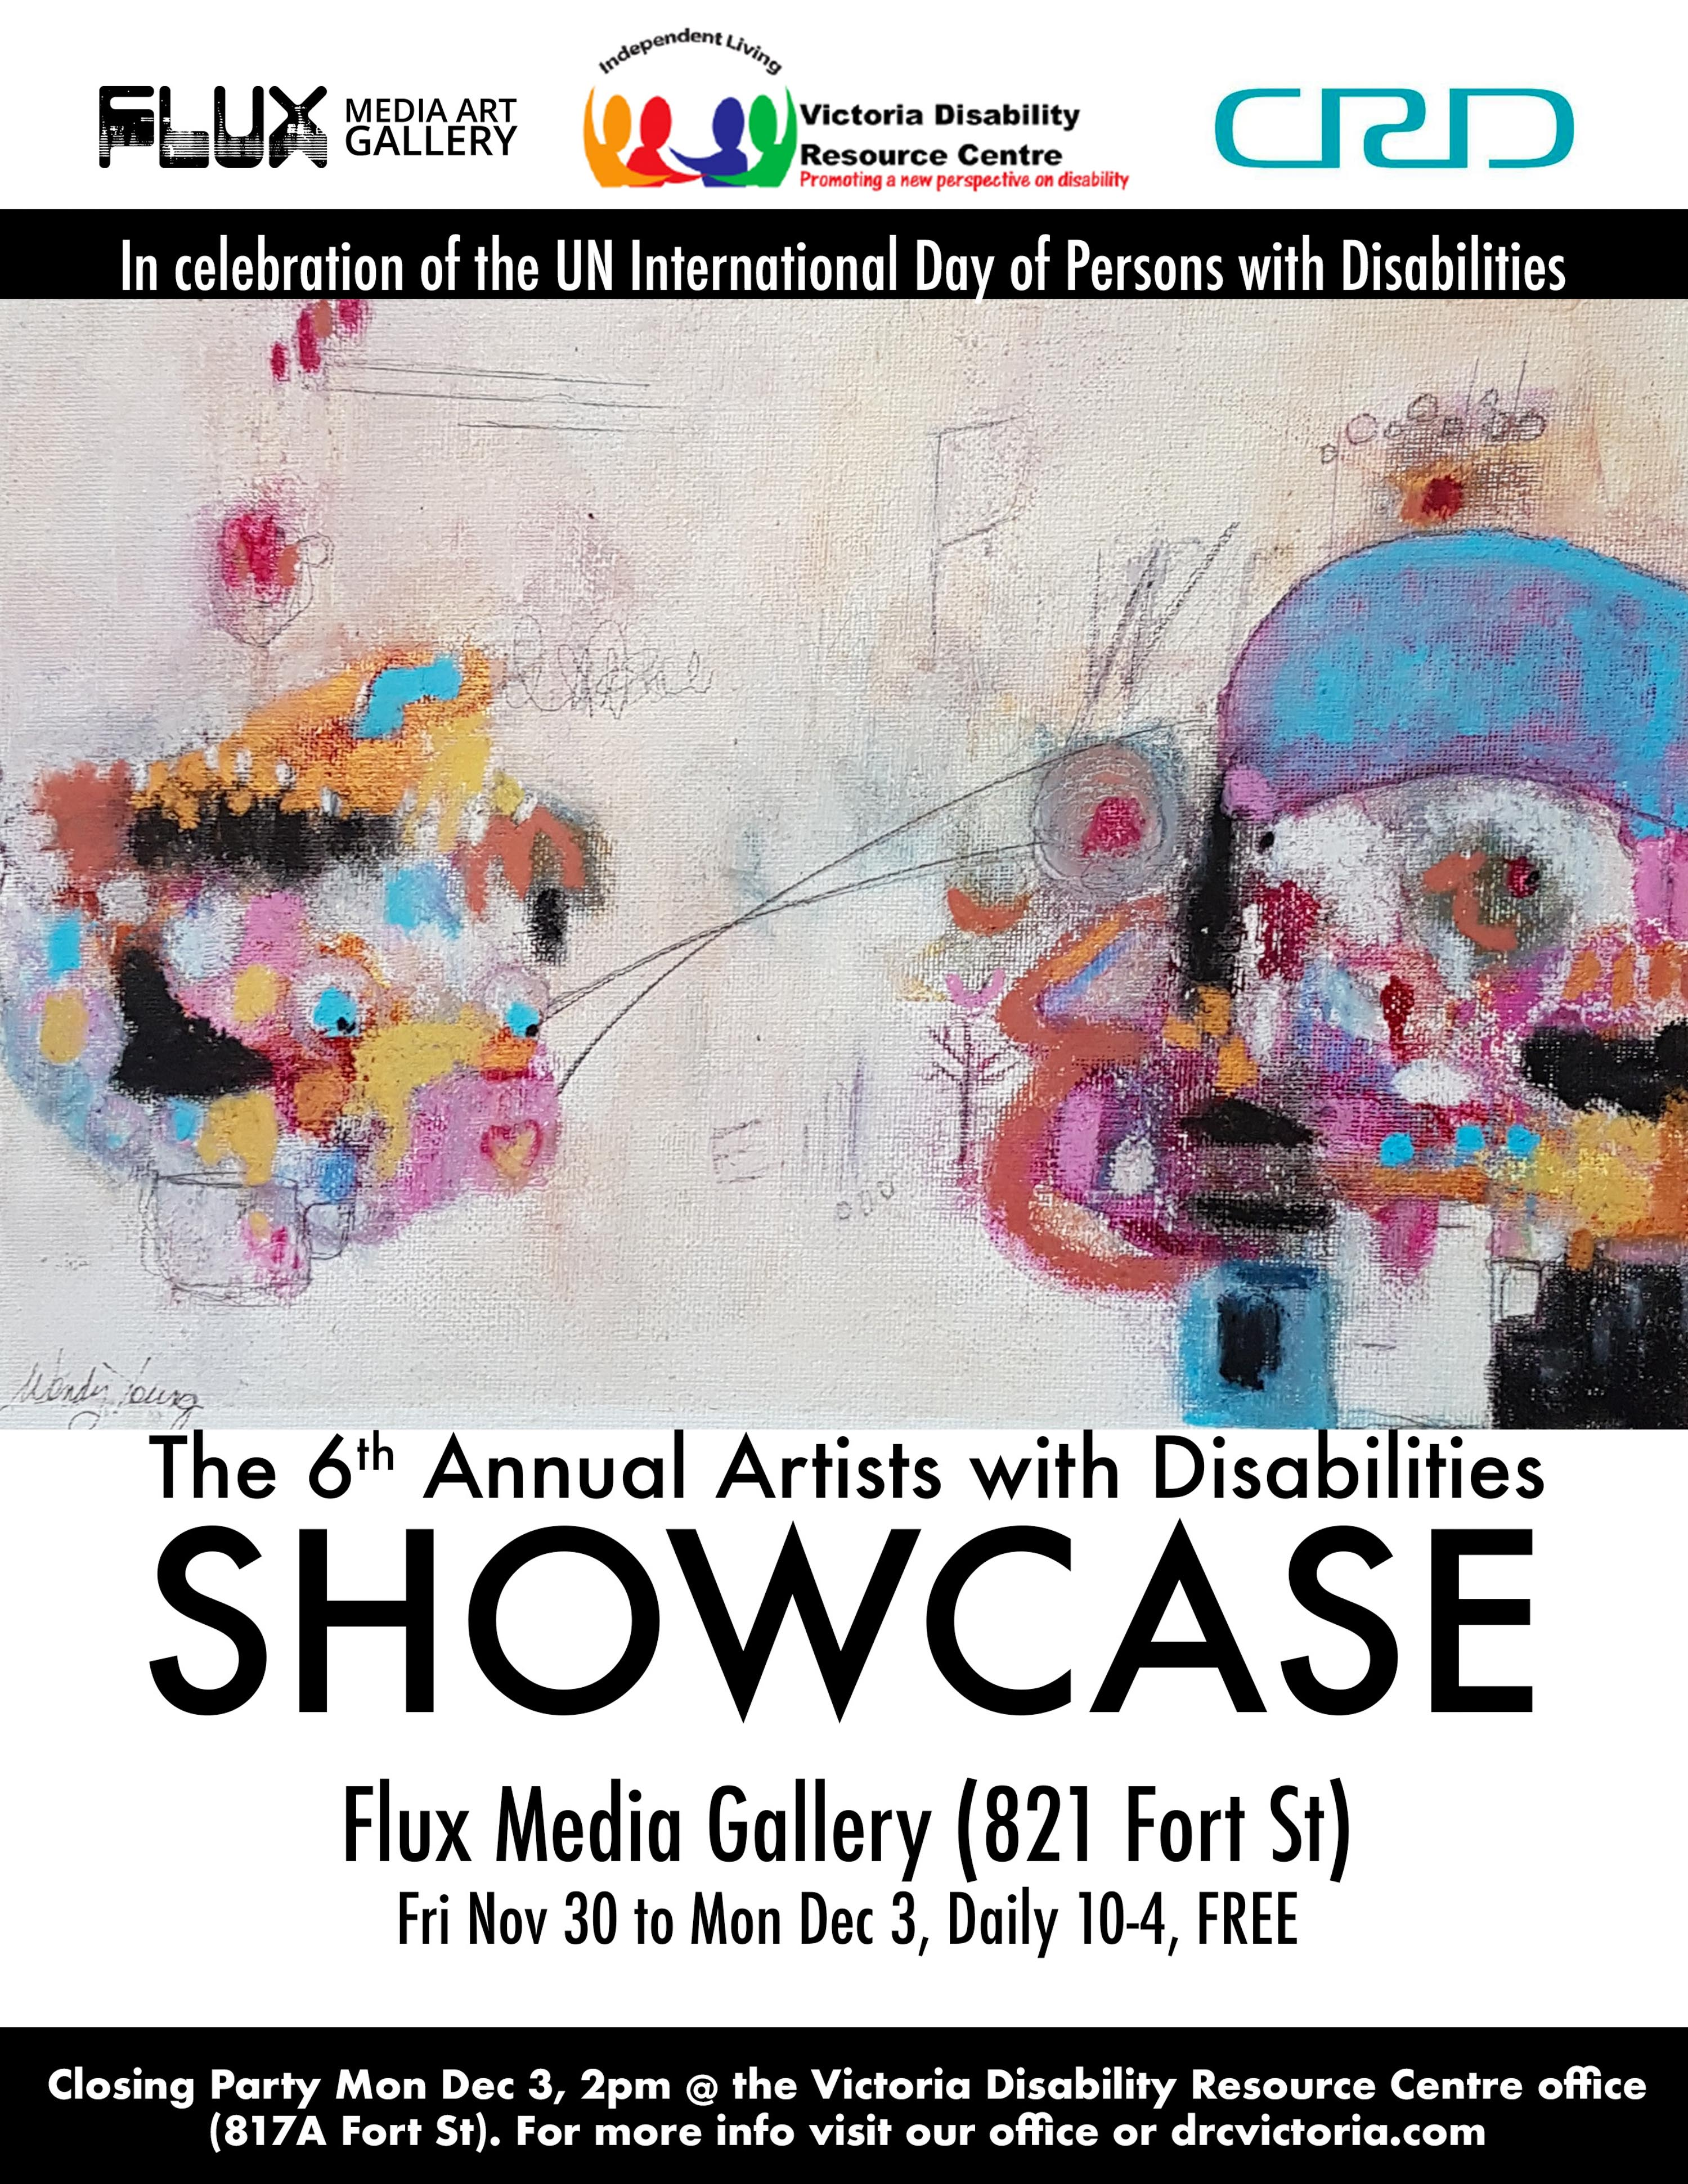 Poster for the 6th Annual Artist's showcase--Nov 30 - Dec 3 2018, and this year to be held right next door to our offices on Fort St., at the Flux Gallery, 821 Fort.